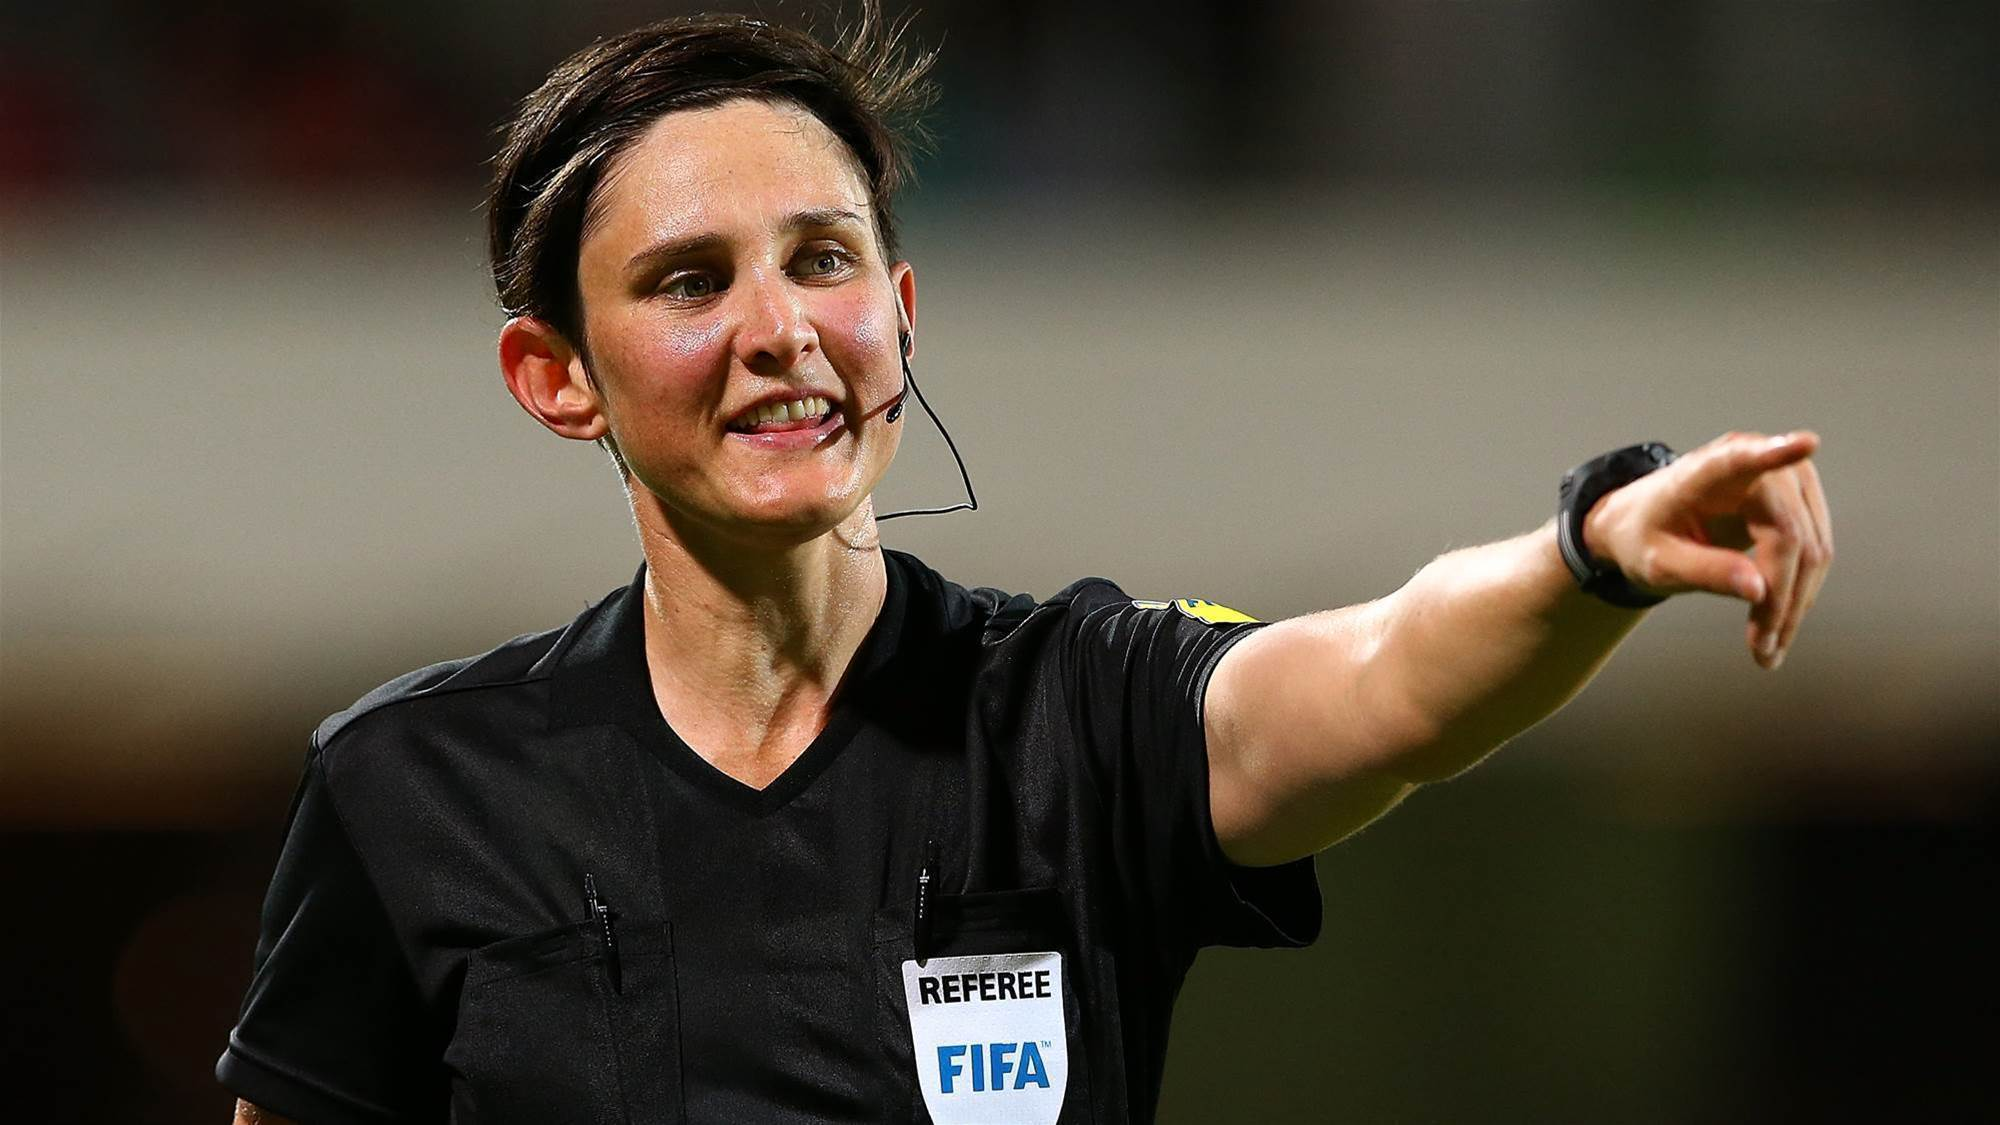 W-League referees named to officiate U-20 Women's World Cup